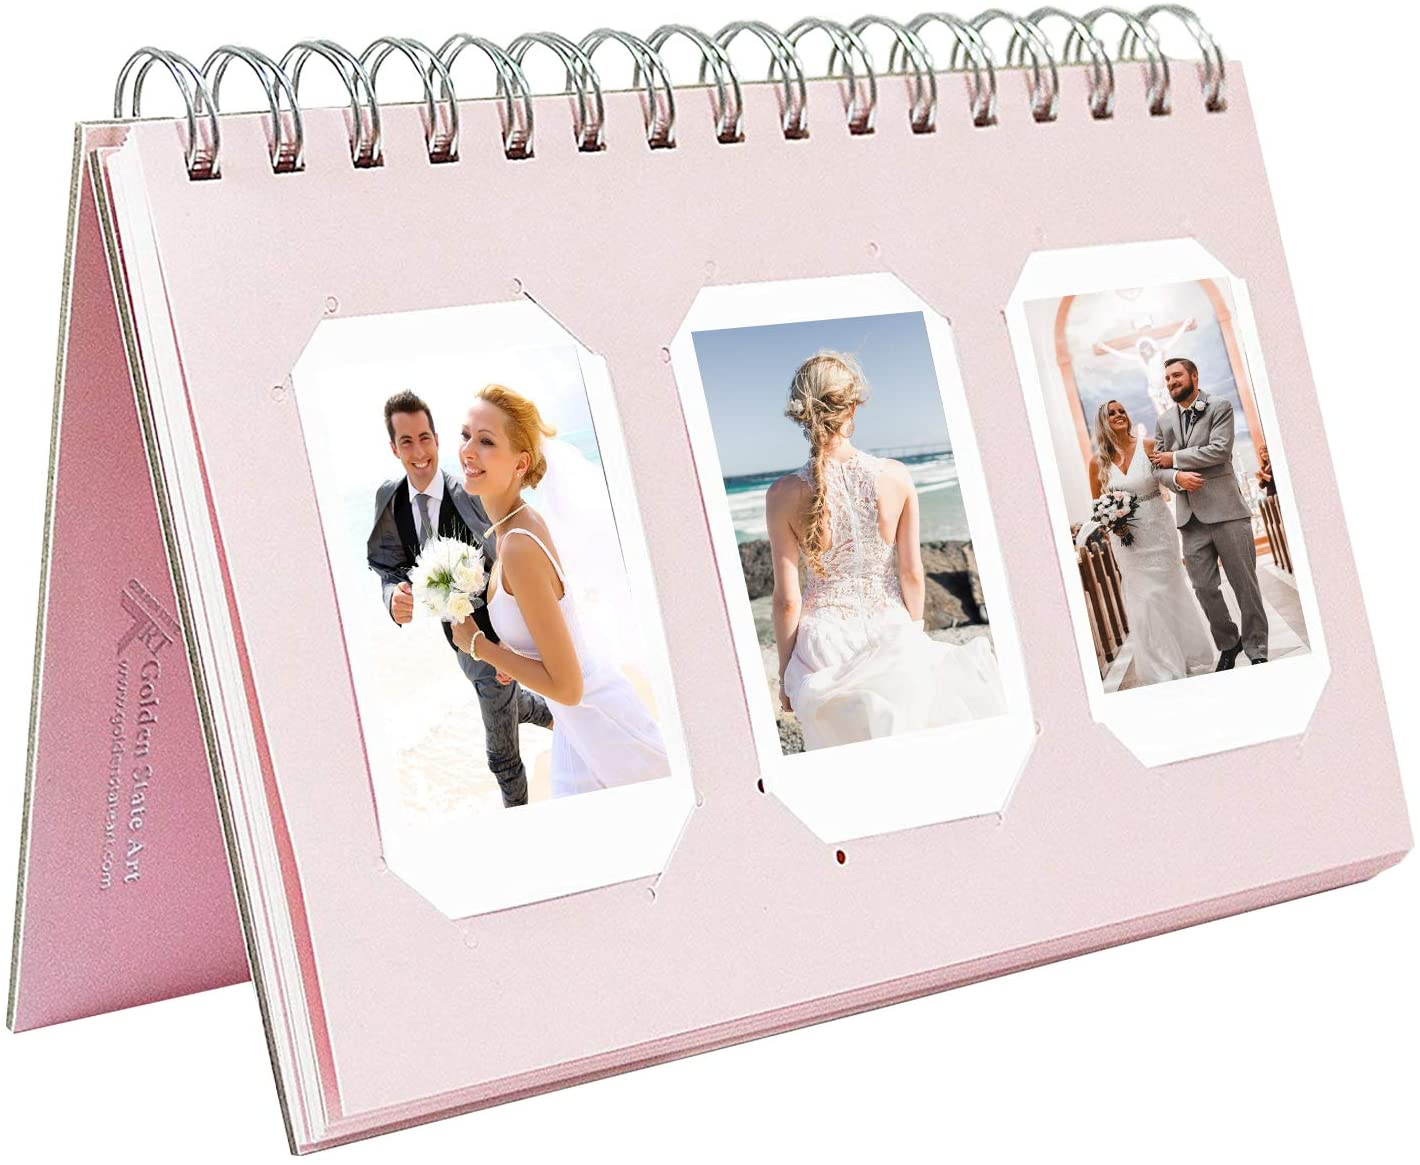 Golden State Art, Instax Frames Collection, Light Pink Photo Album Book Style, 60 Pockets, for Camera Fujifilm Instax Mini 7S 8 70 90 25 50S 8+ Film